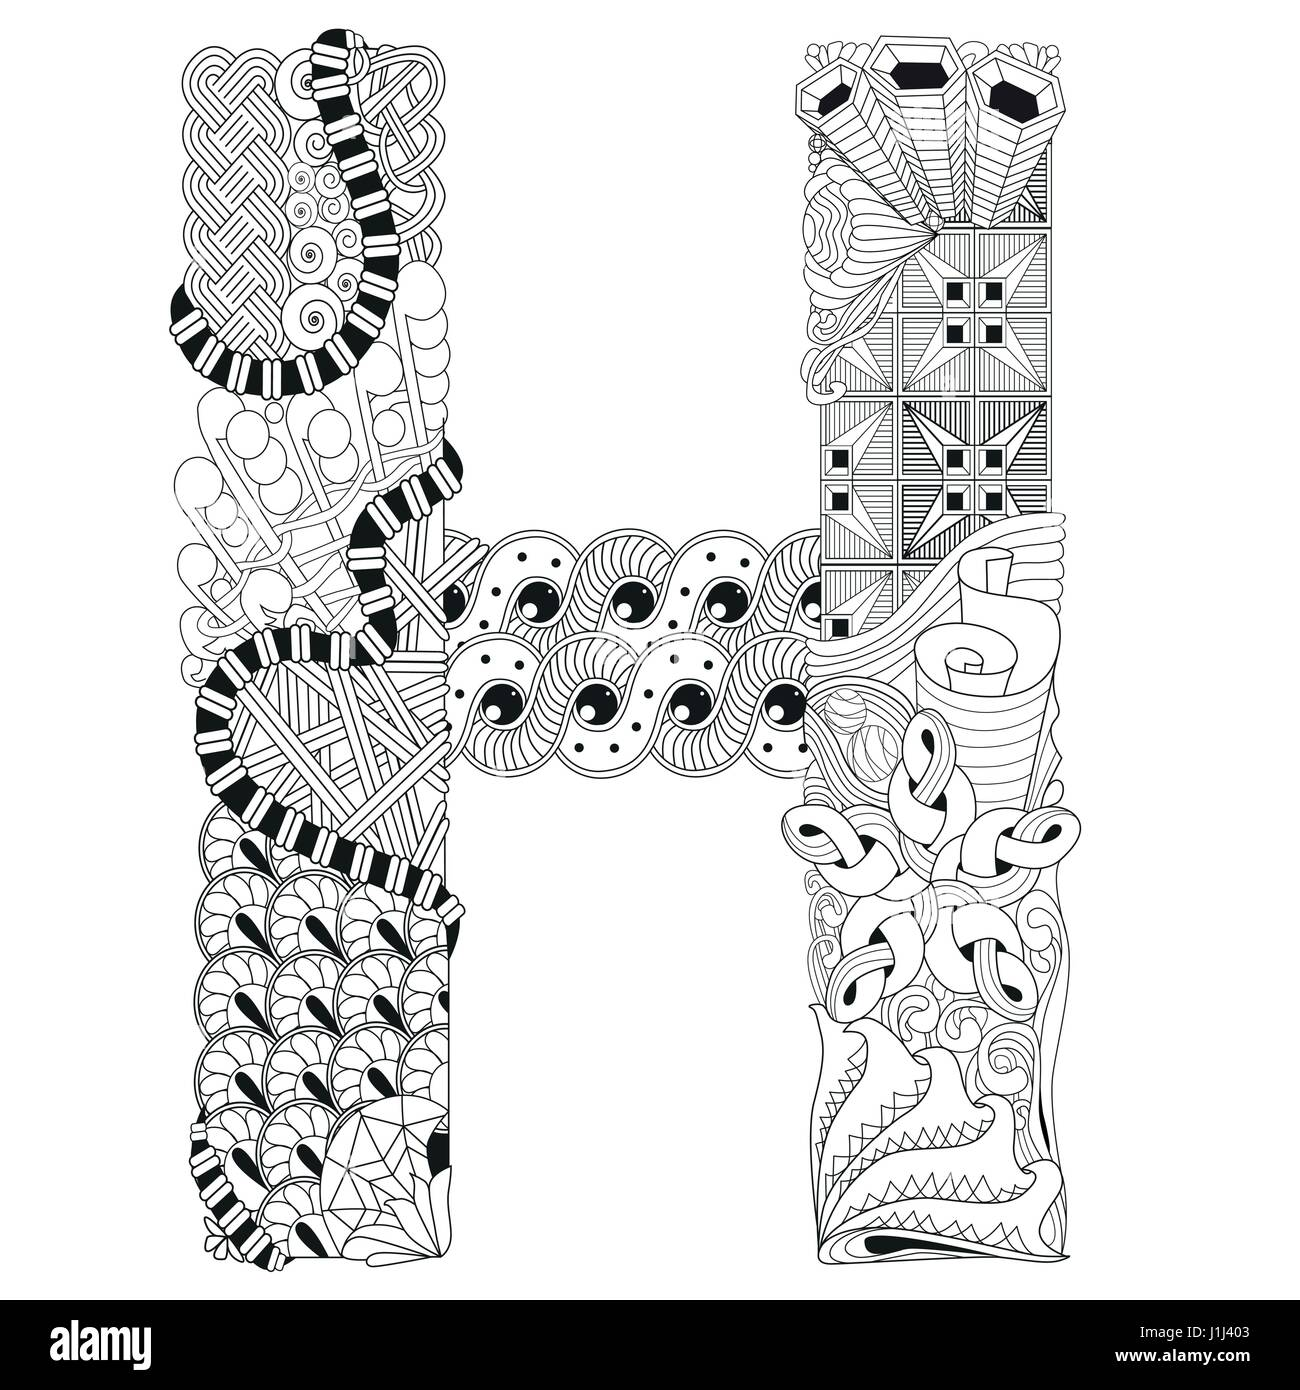 Letter h for coloring vector decorative zentangle object stock letter h for coloring vector decorative zentangle object altavistaventures Choice Image